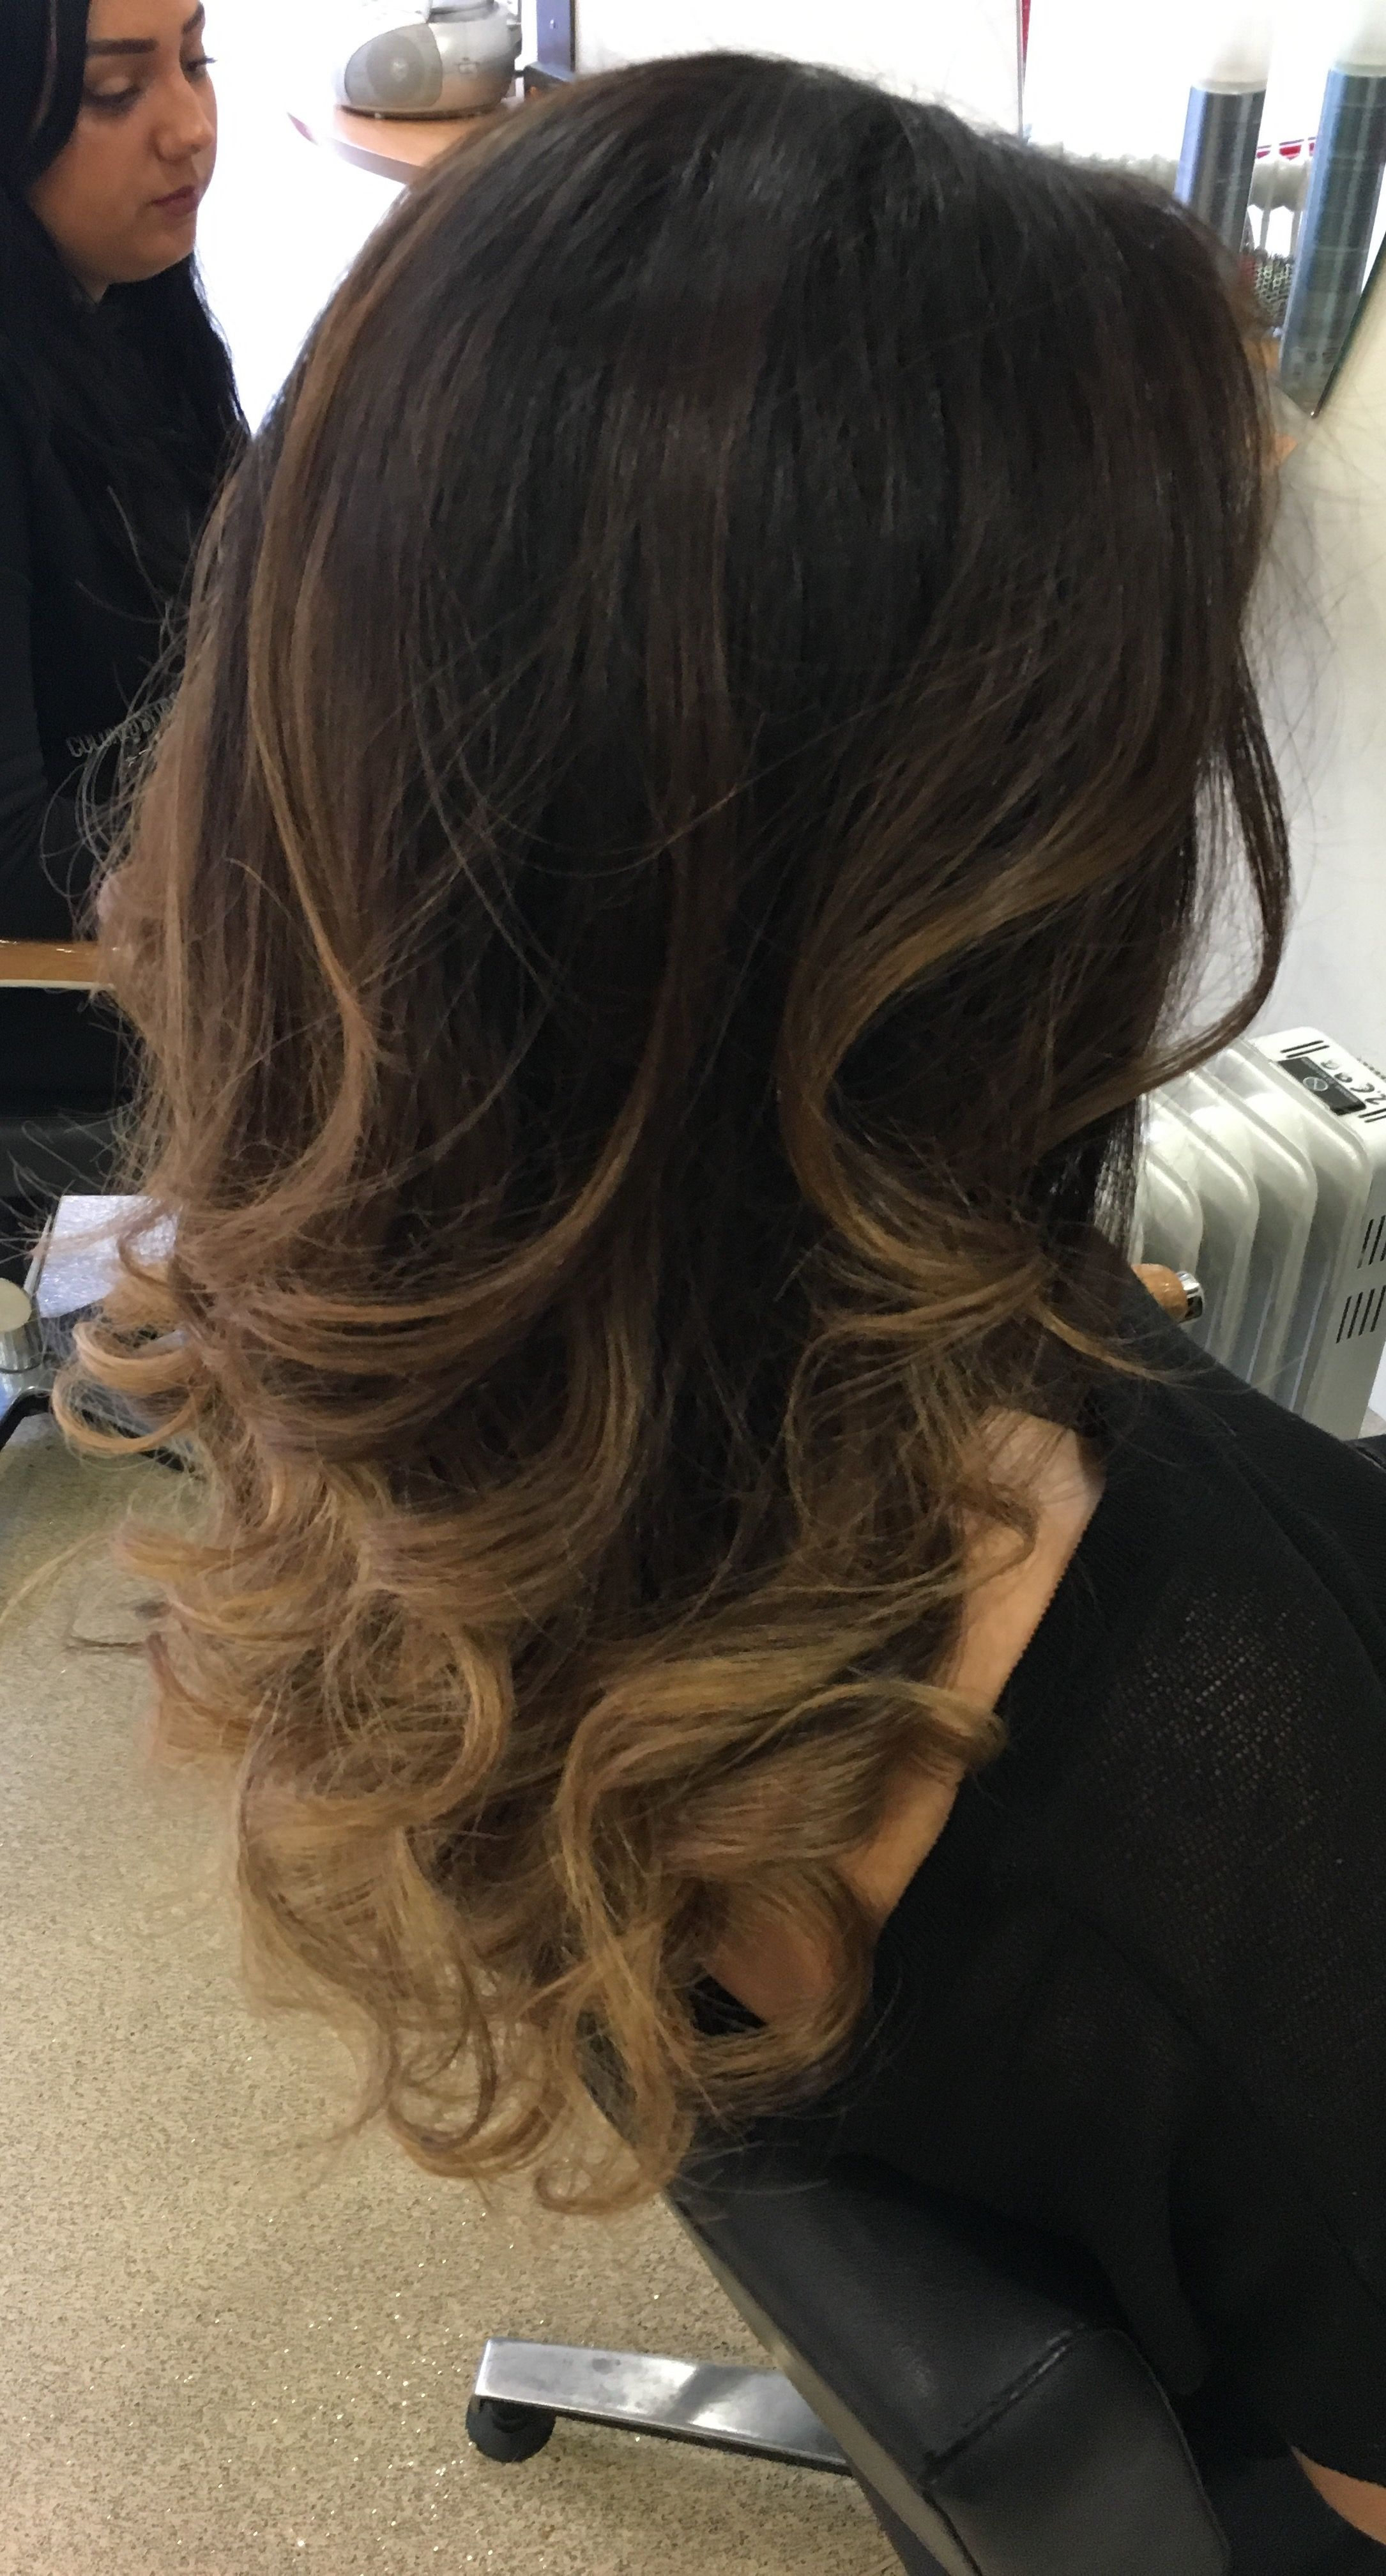 Curly Blowdry Blow Dry Hair Curly Blowdry Curly Blowdry Long Hair